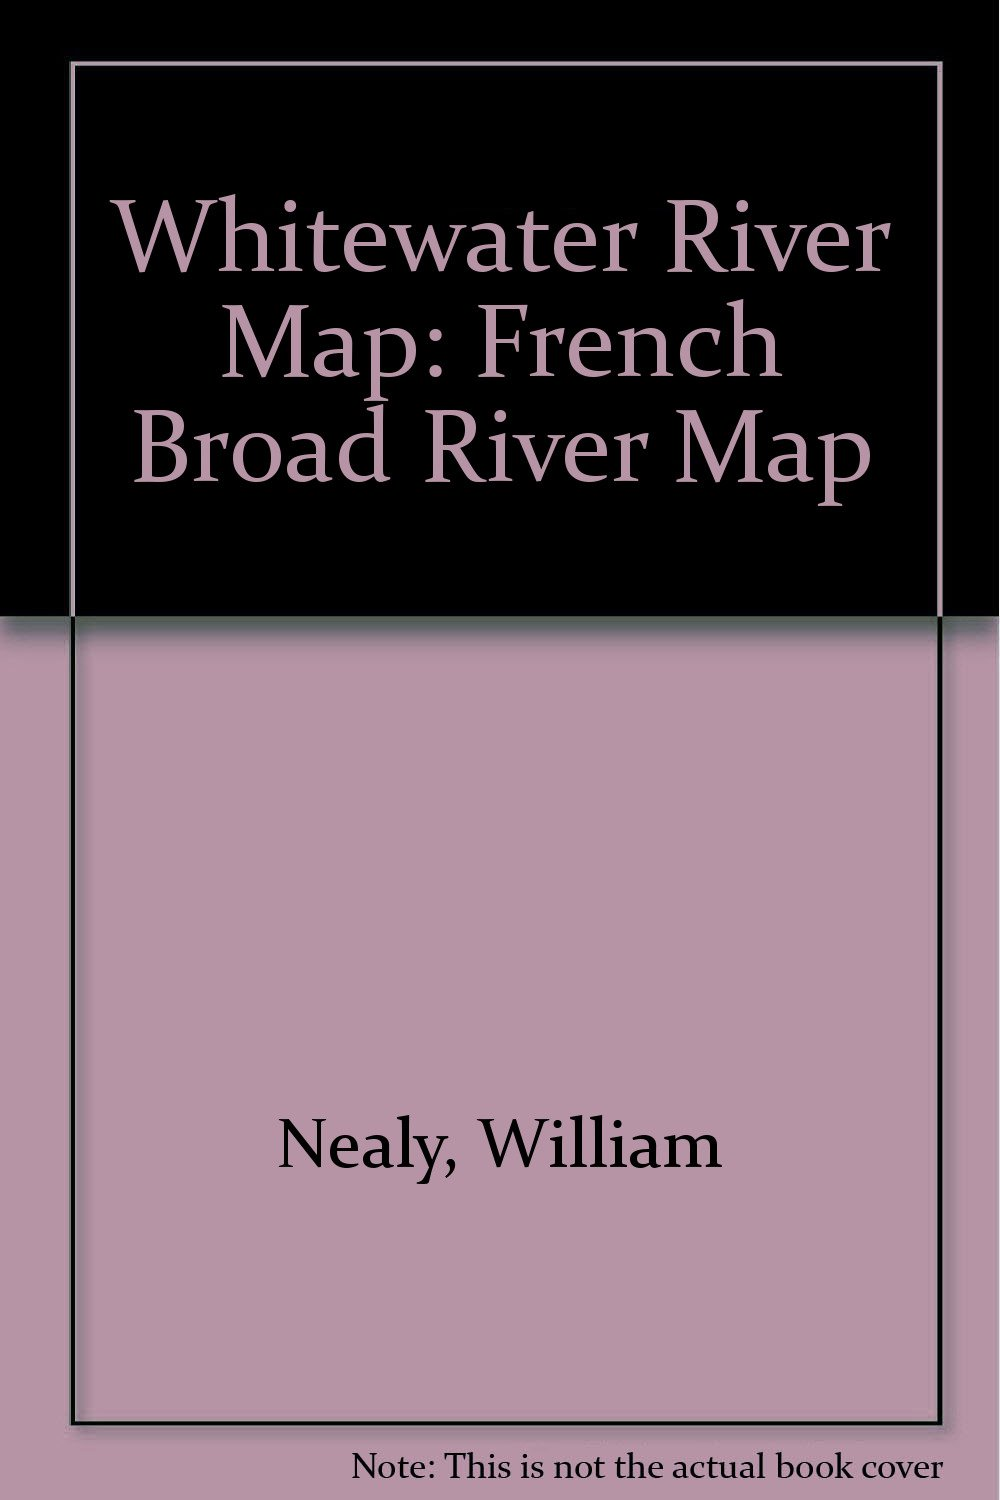 Whitewater River Map: French Broad River Map: William Nealy ...